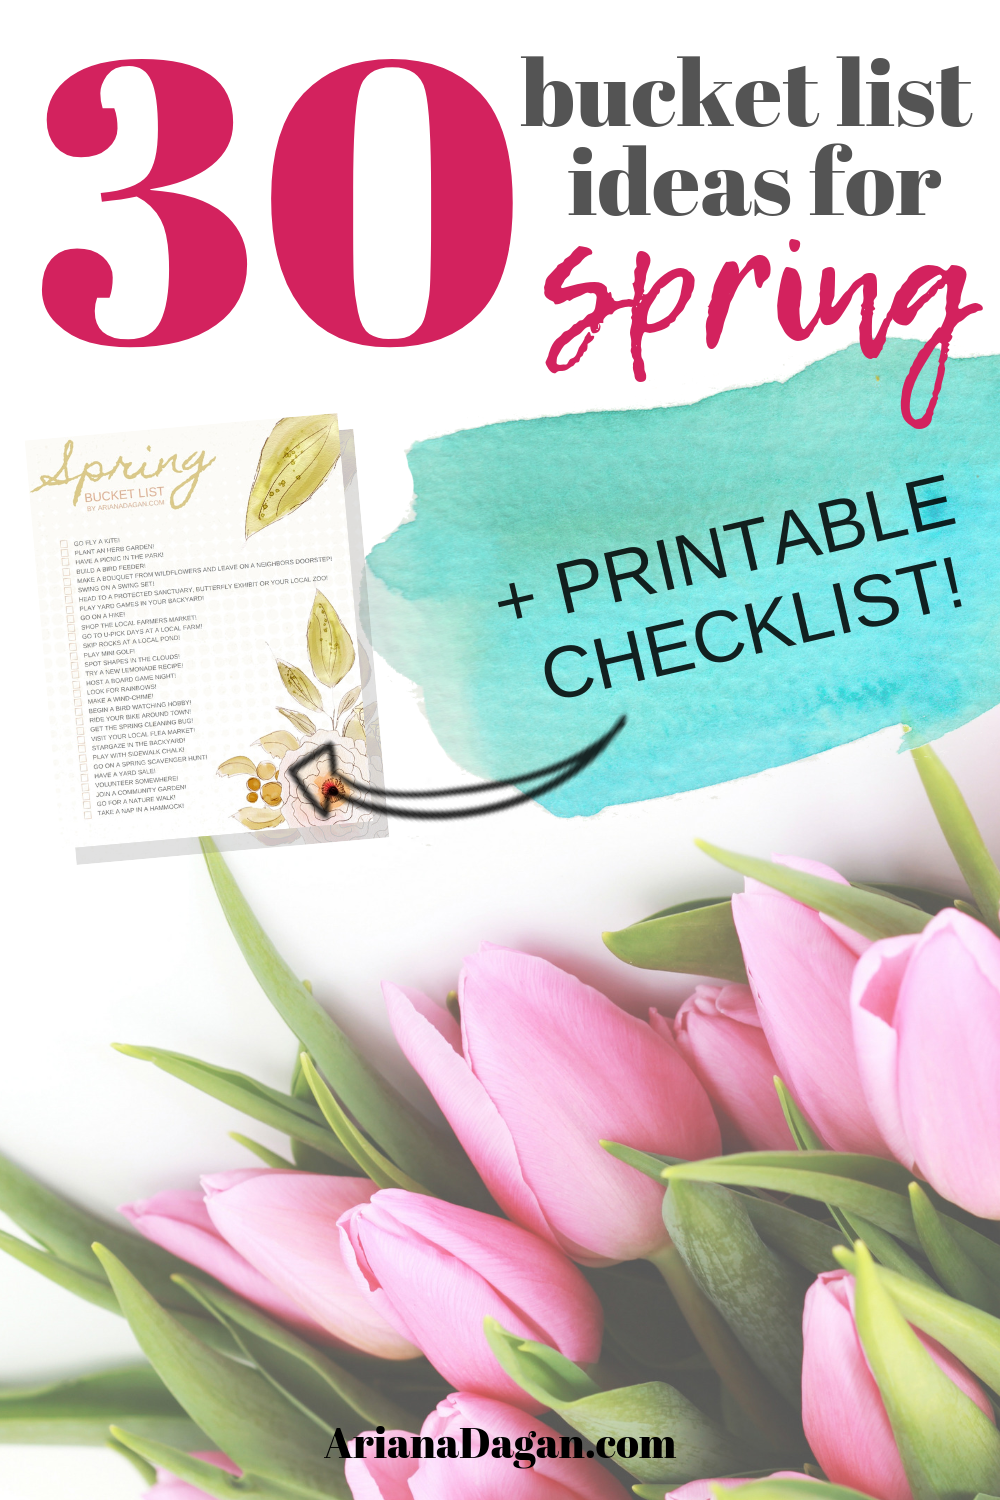 30 Fun Spring Activities for Singles, Couples and Families + FREE Spring Bucket List Printable!